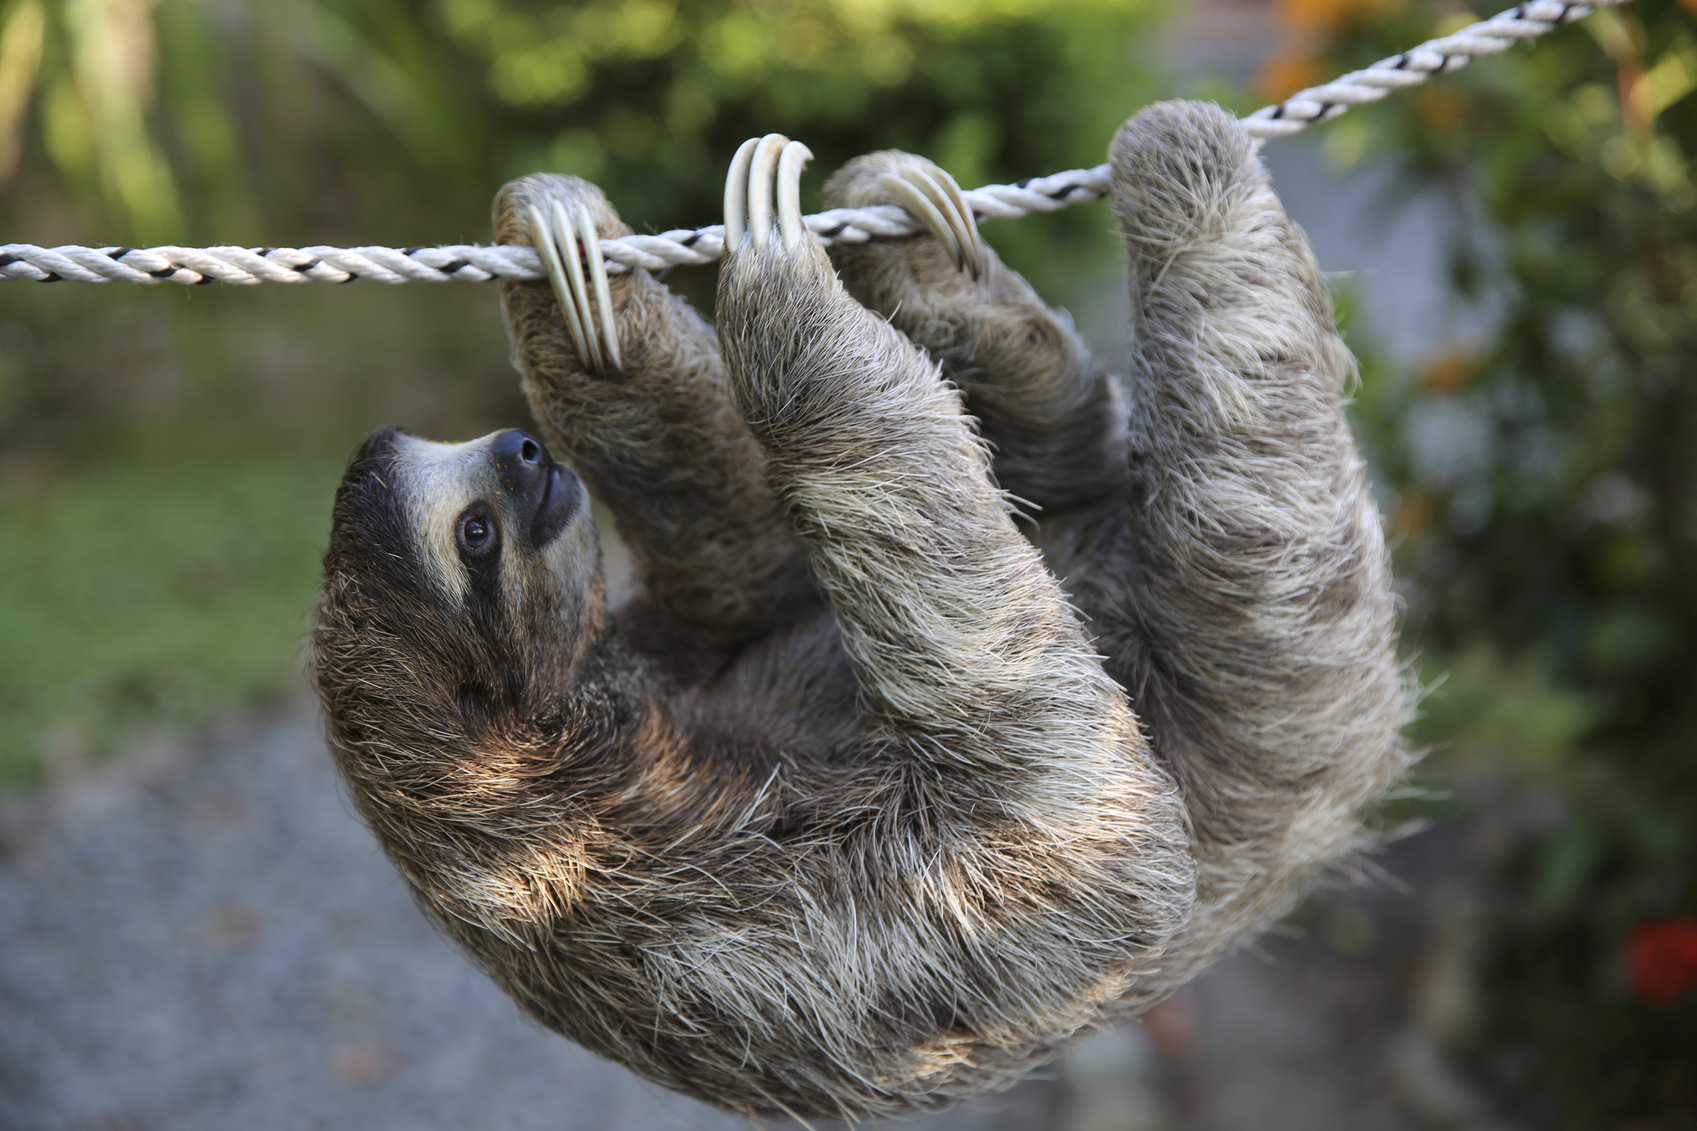 Sloth going to the bathroom - Sloth Going To The Bathroom 54